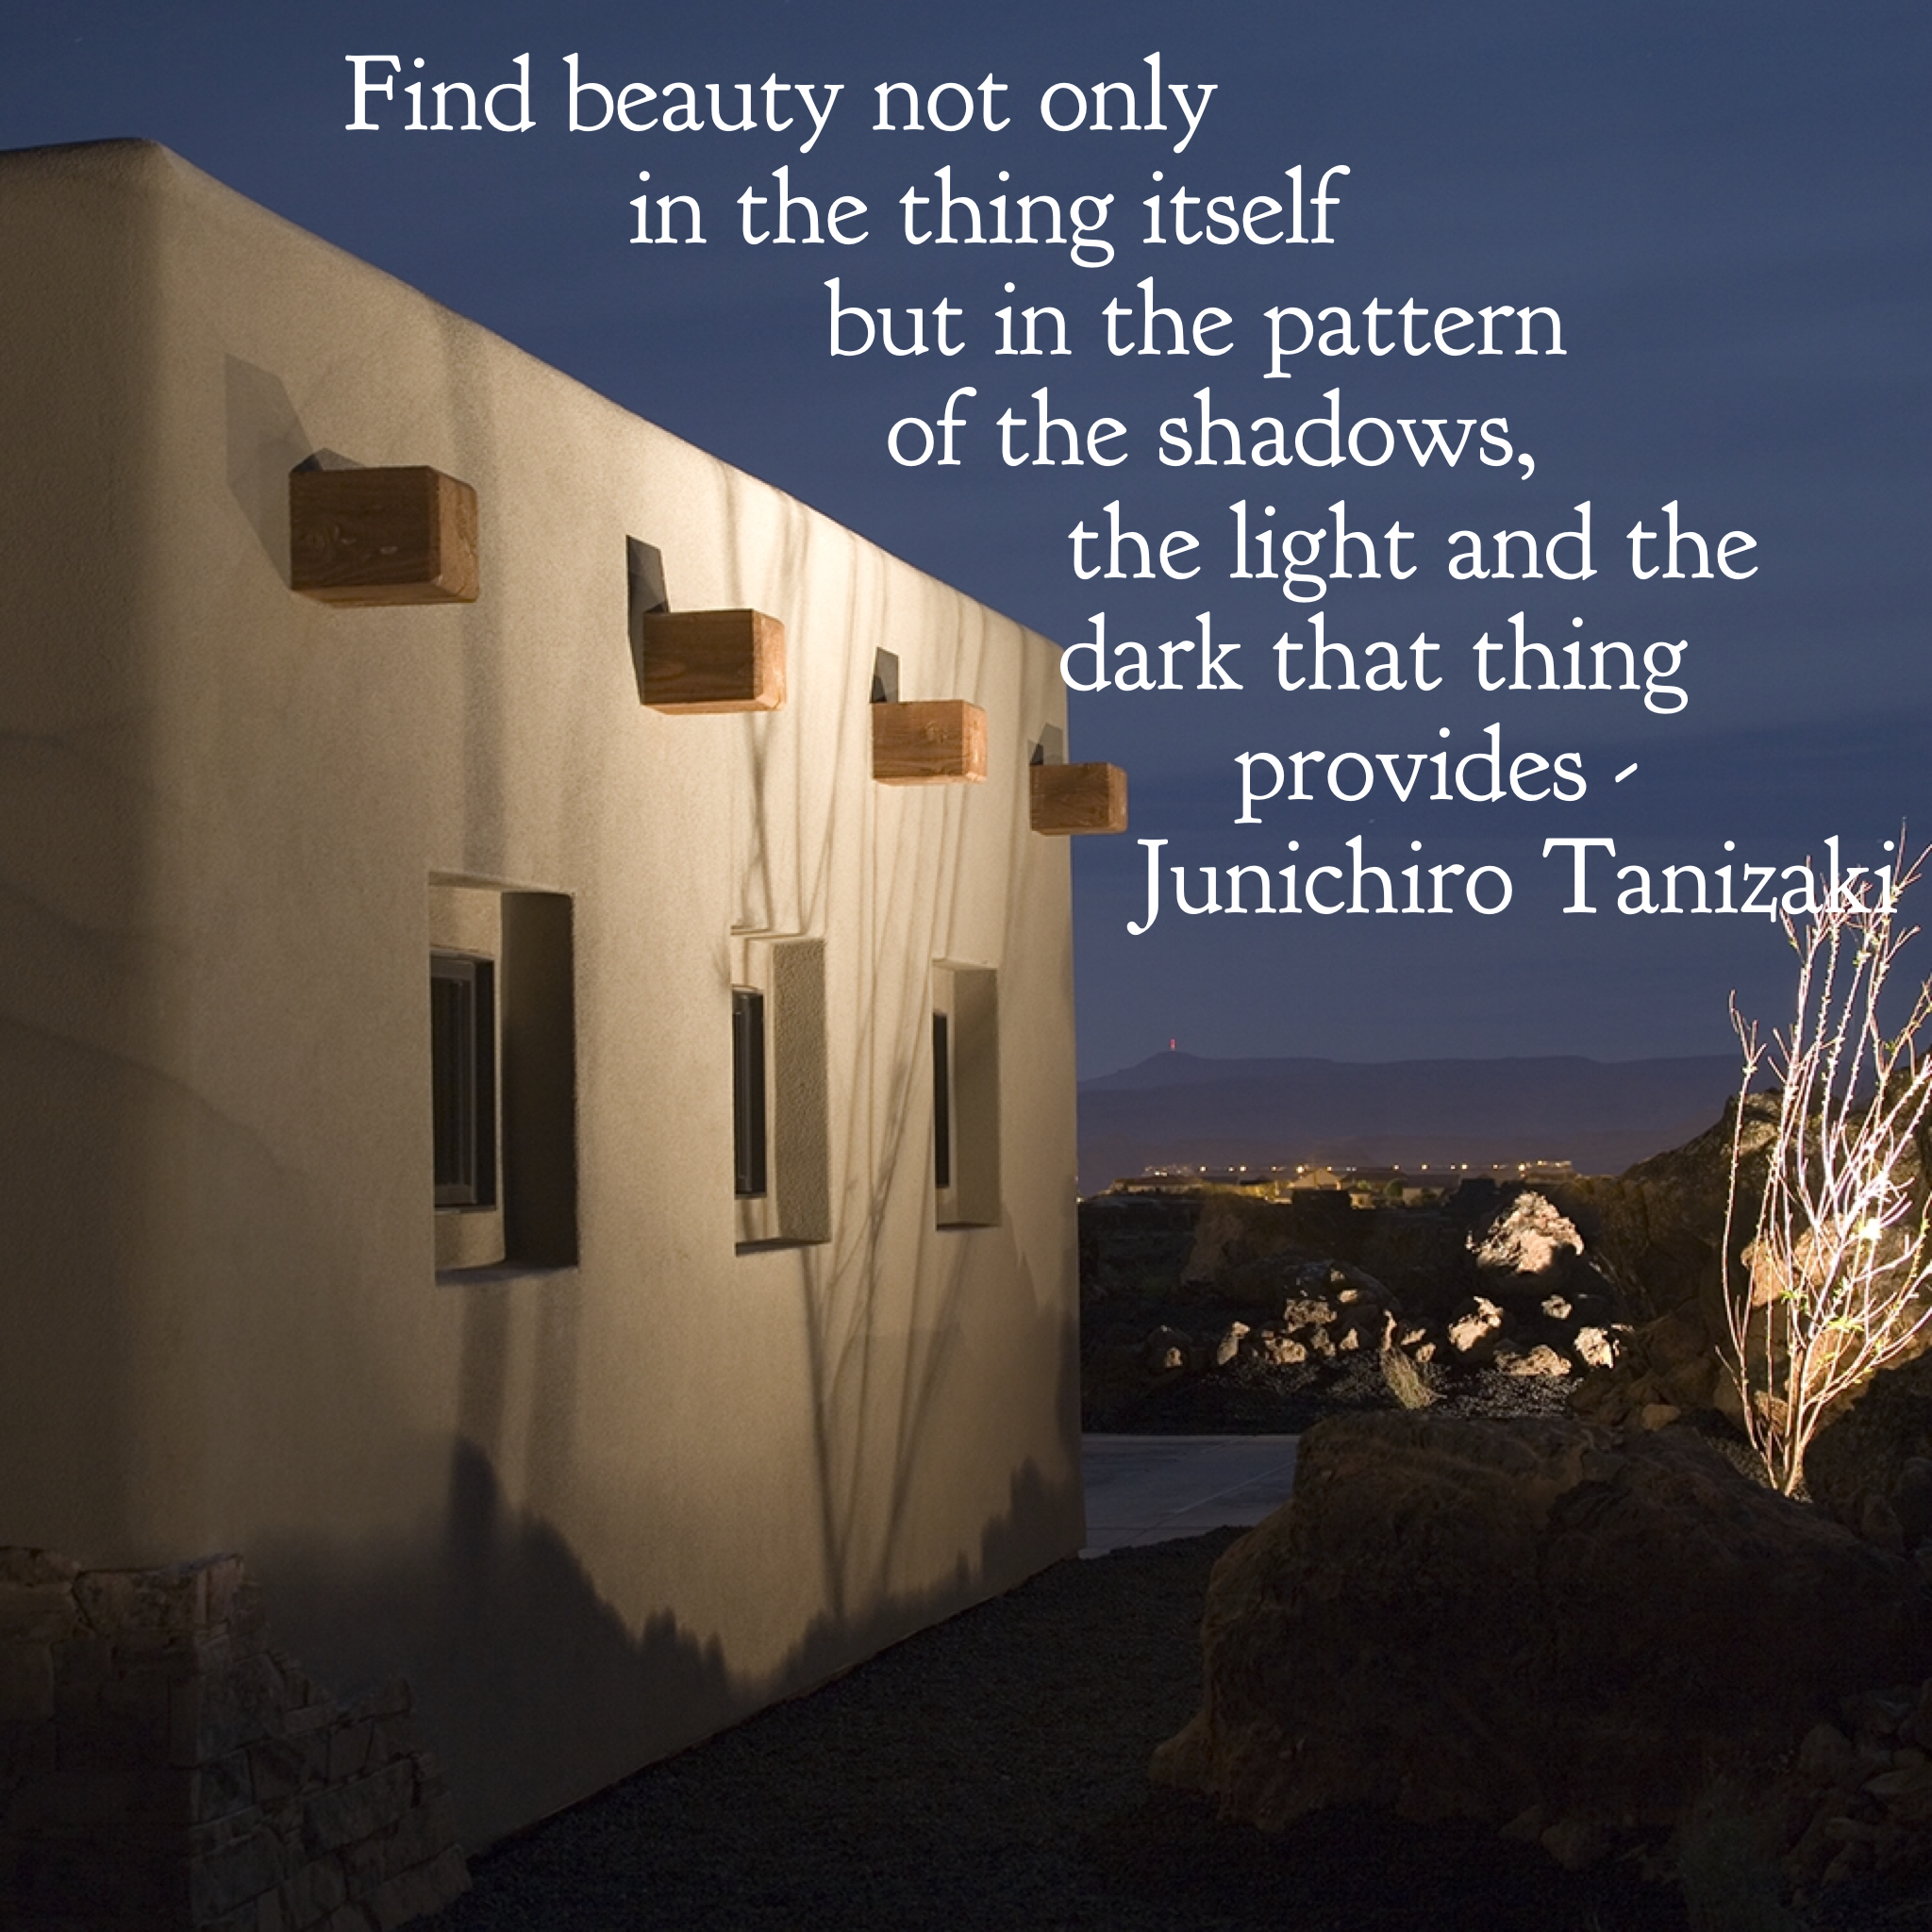 Inspirational Quote About Beauty Light And Darkness Find Beauty Not Only In The Thing Itself But In The Pattern Of The Shadow Light Quotes Find Beauty Light